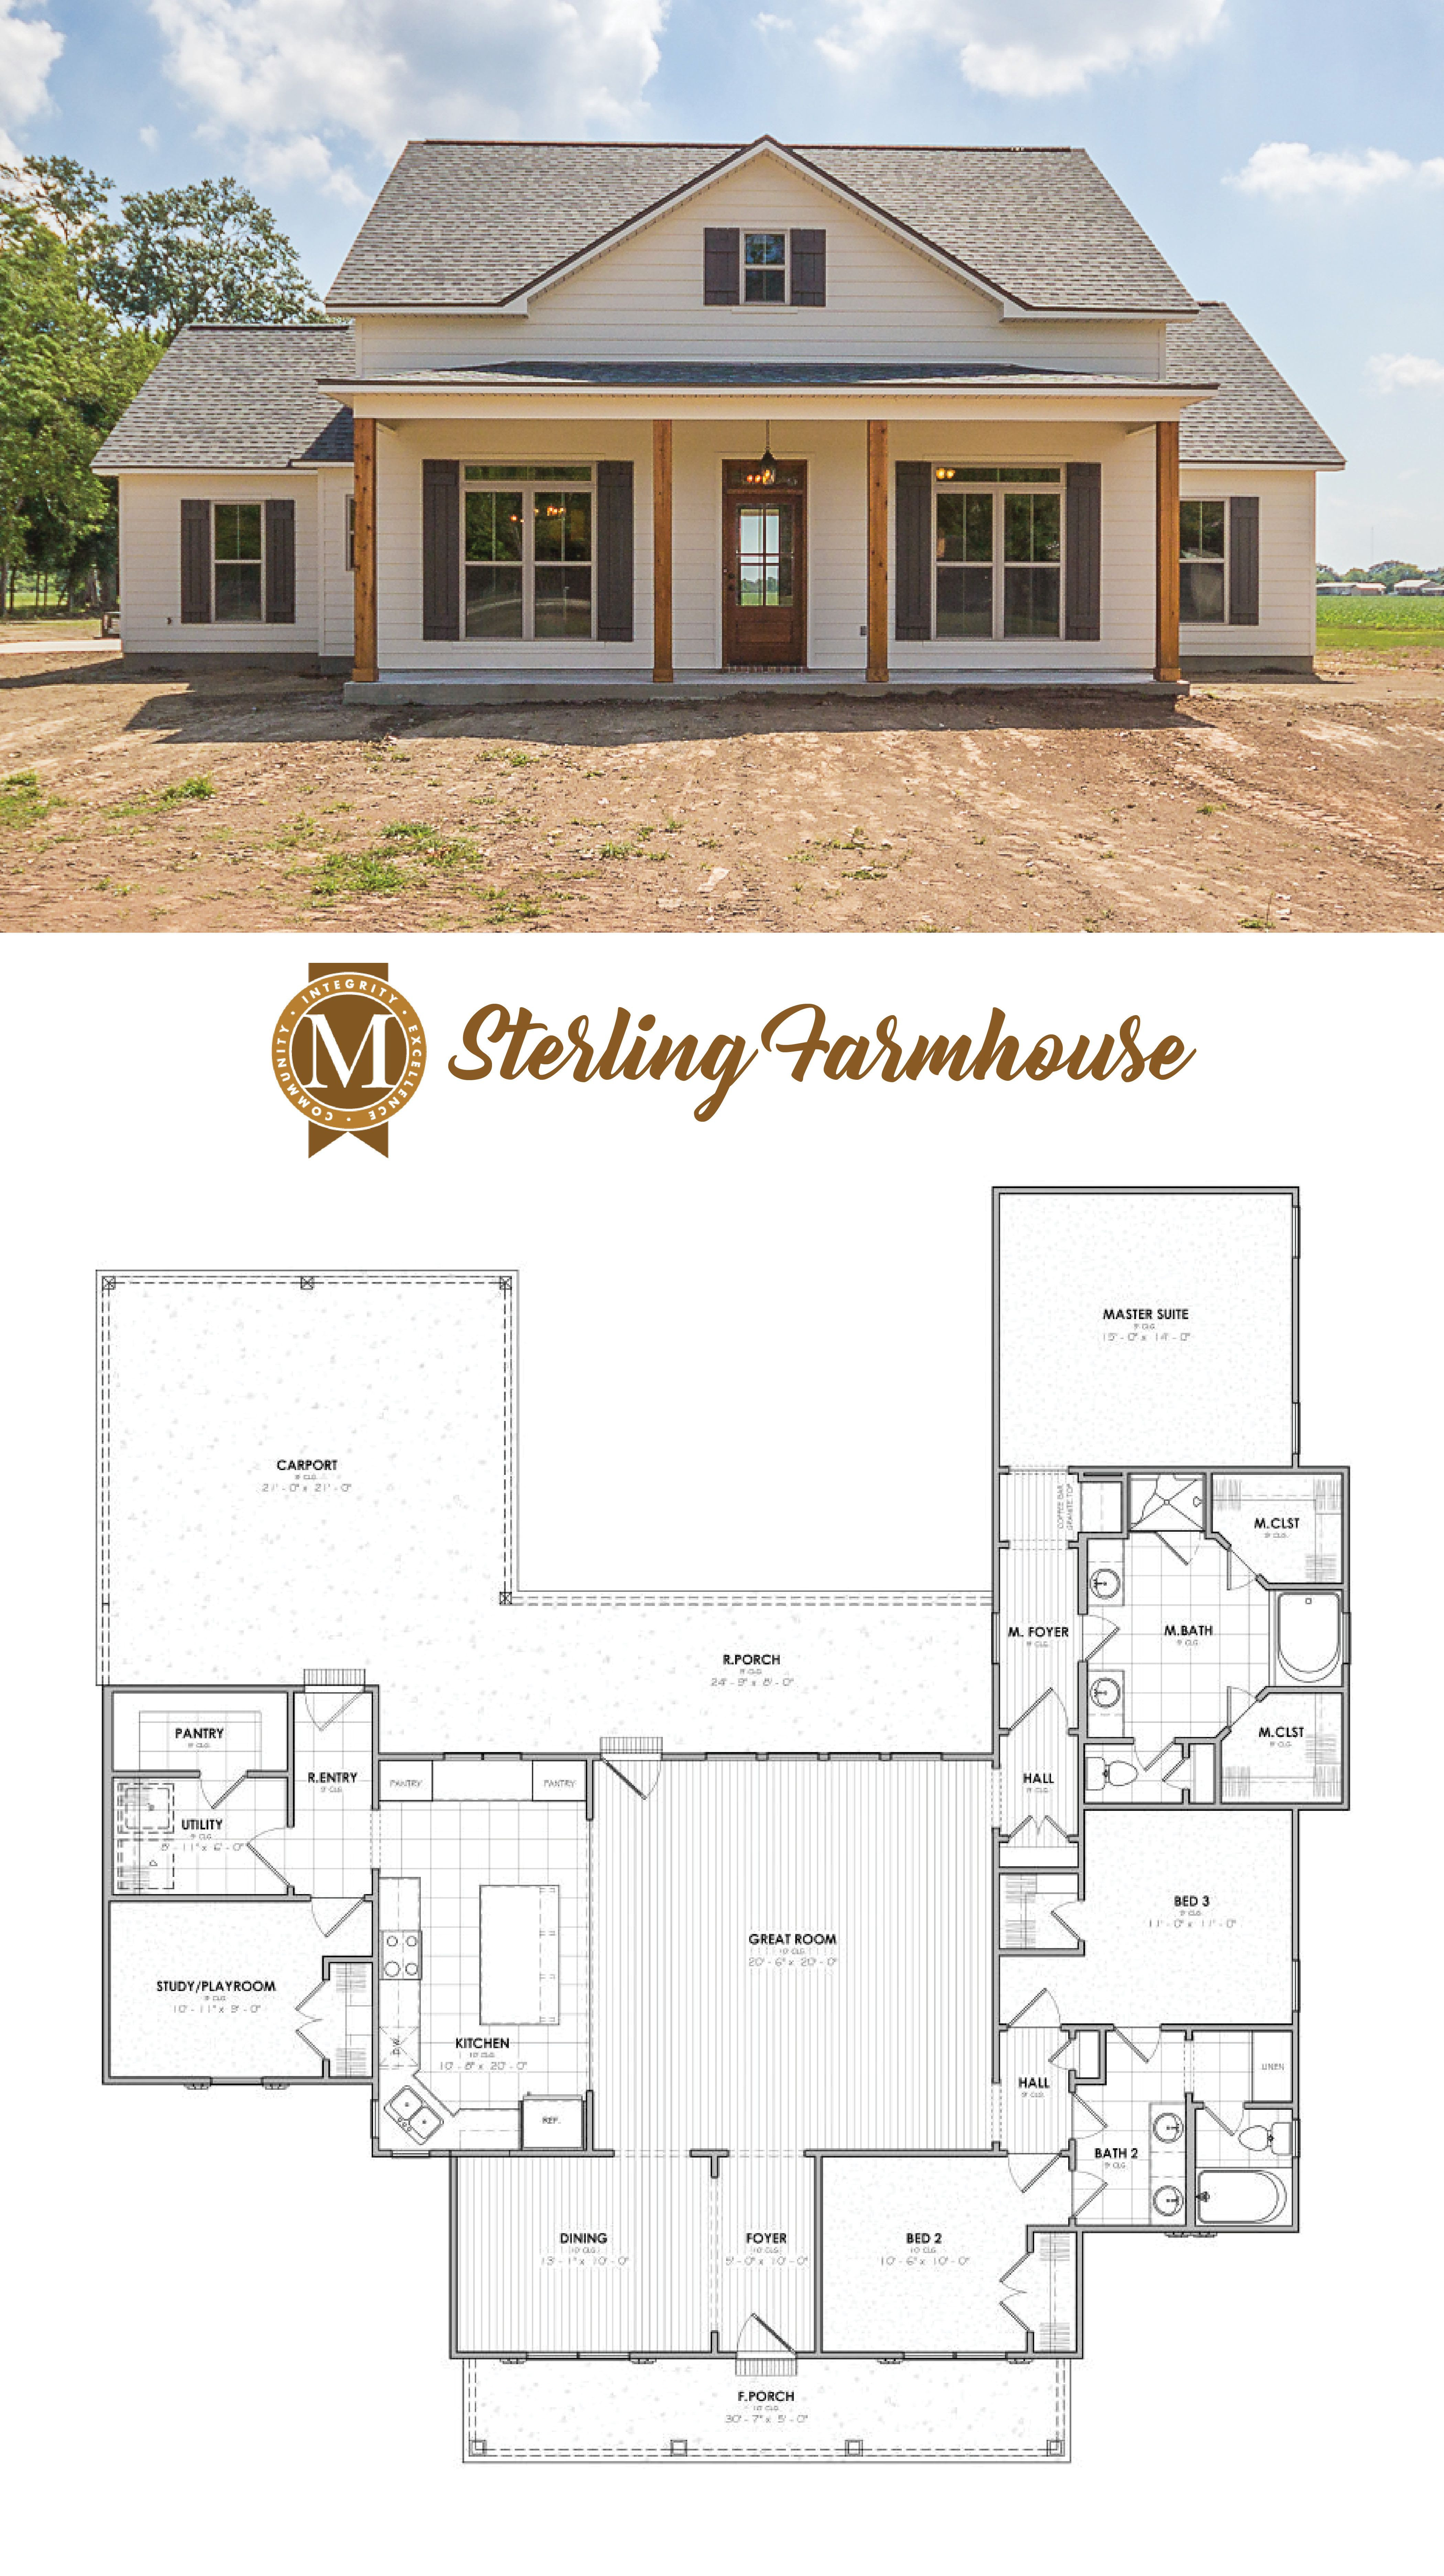 House Plans Baton Rouge Beautiful Living Sq Ft 2206 Bedrooms 3 or 4 Baths 2 Lafayette Lake